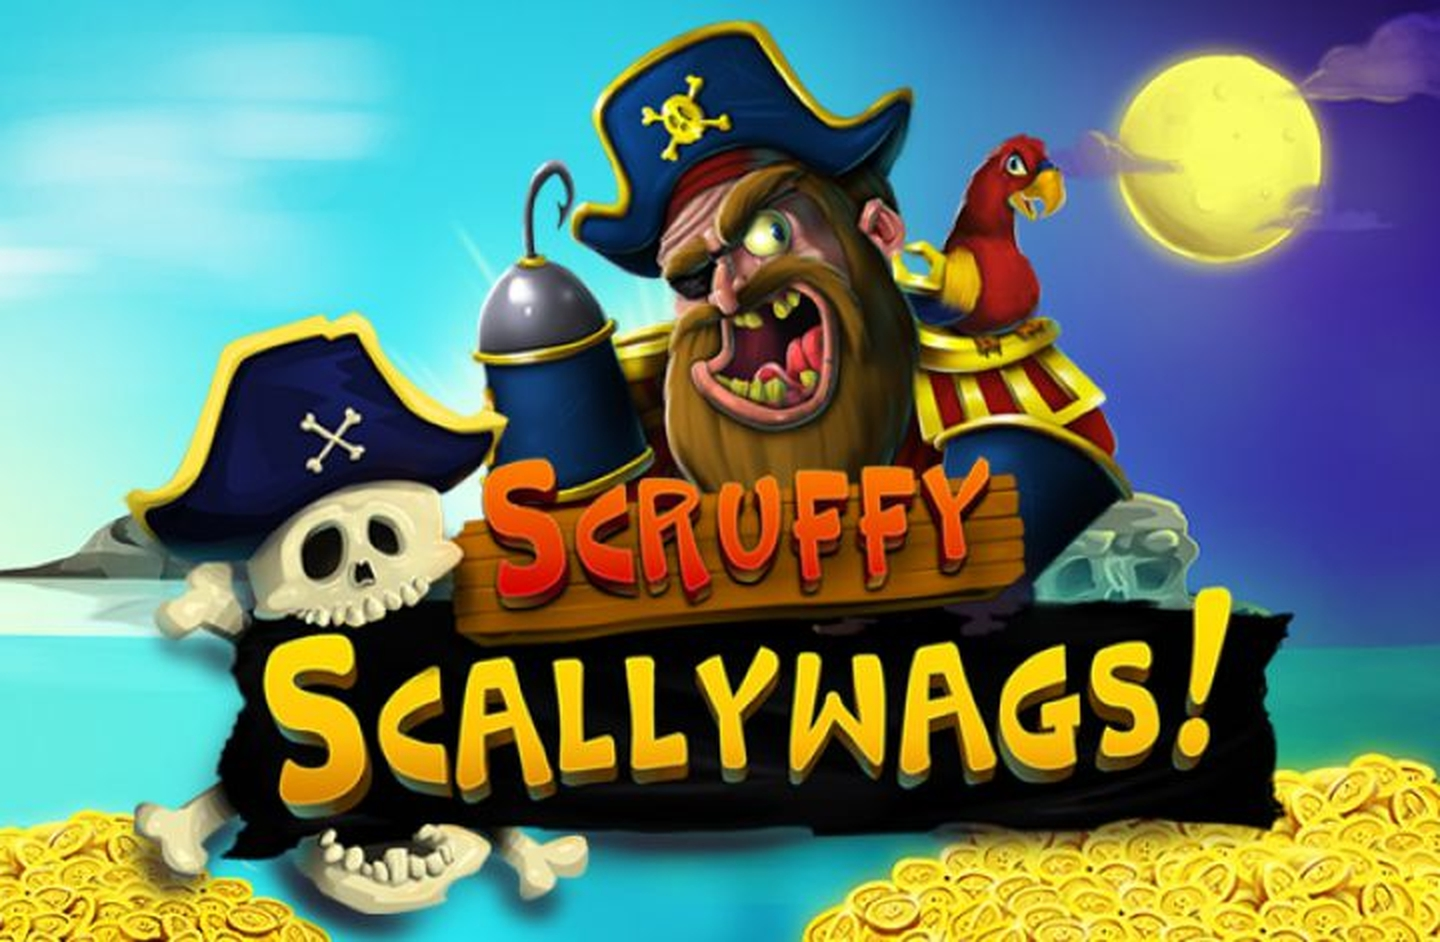 The Scruffy Scallywags Online Slot Demo Game by Habanero